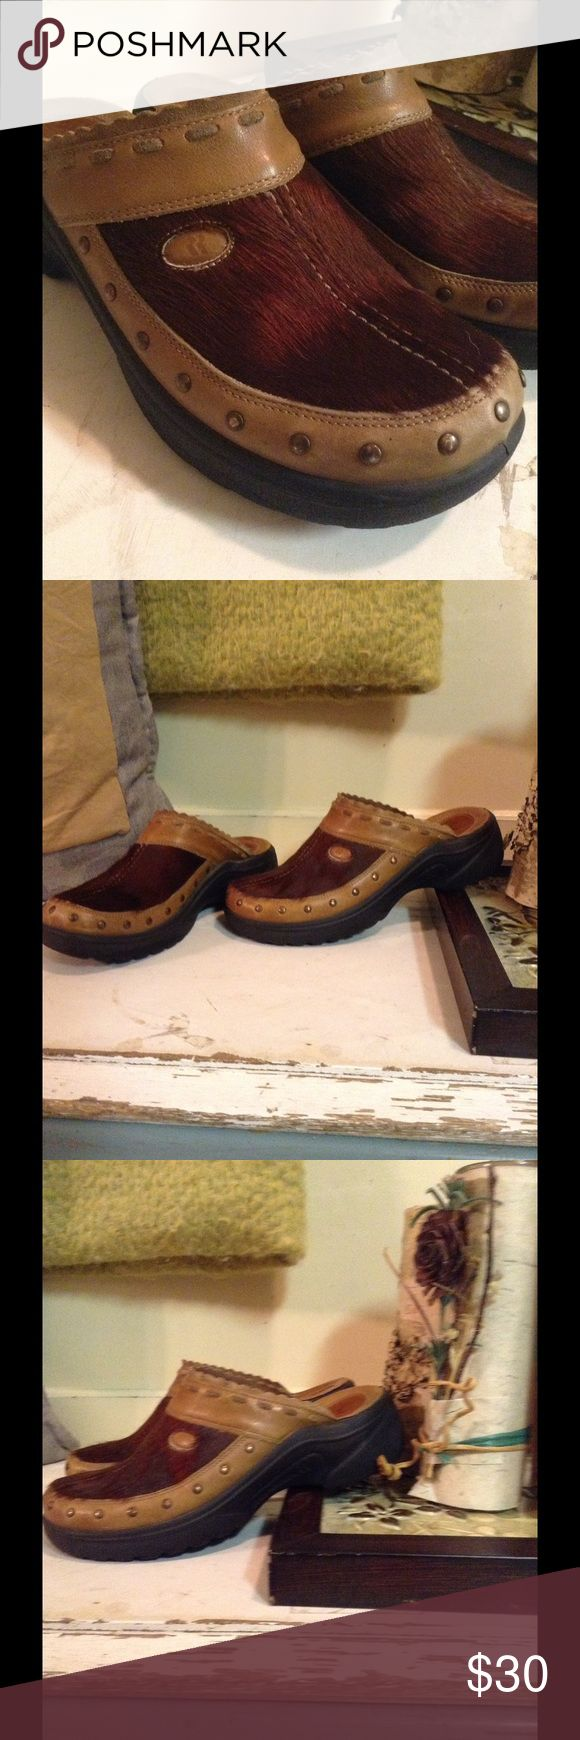 Romika leather clogs Pony hair upper, all leather clog, very clean, worn twice, rubber antishock sole. Romika Shoes Mules & Clogs